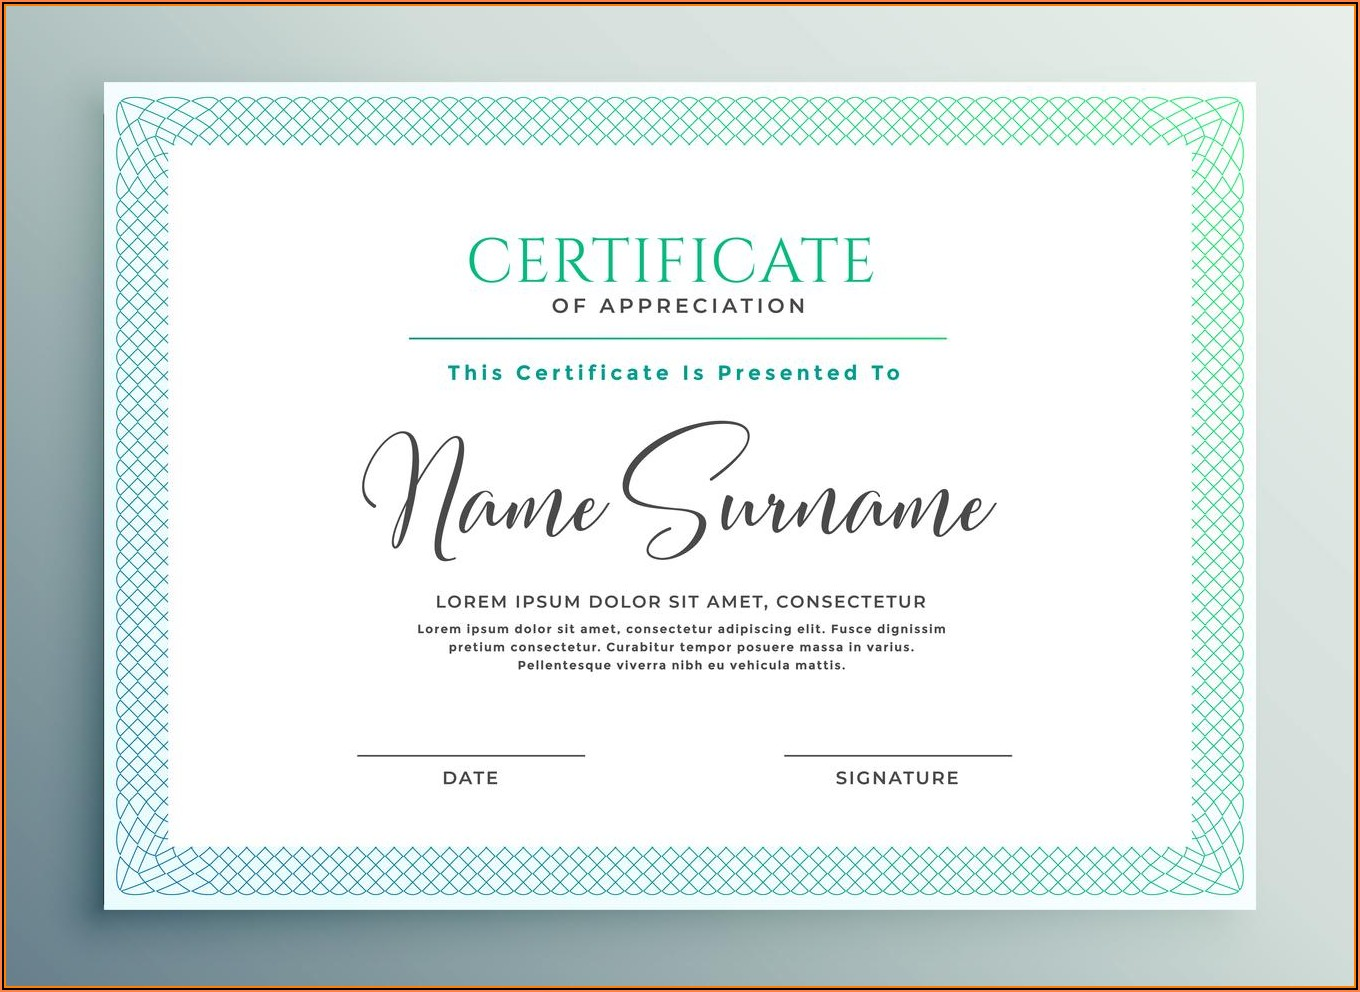 Christian Certificate Of Appreciation Sample